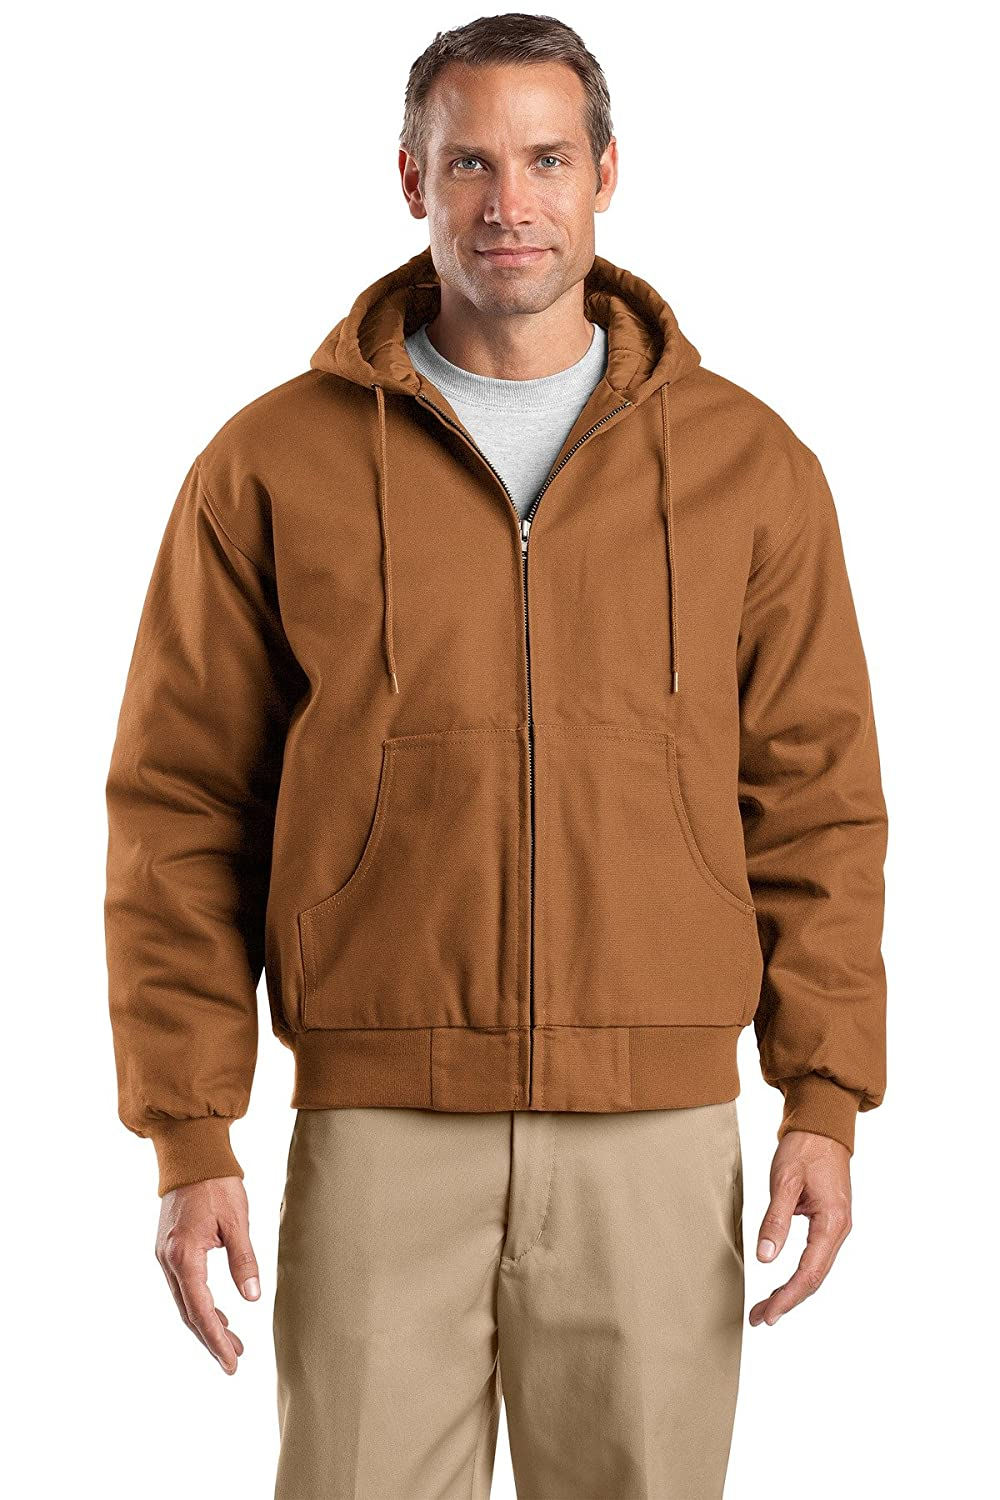 Cornerstone OUTERWEAR メンズ B00PCQOFSA 6X Big|Duck Brown Duck Brown 6X Big